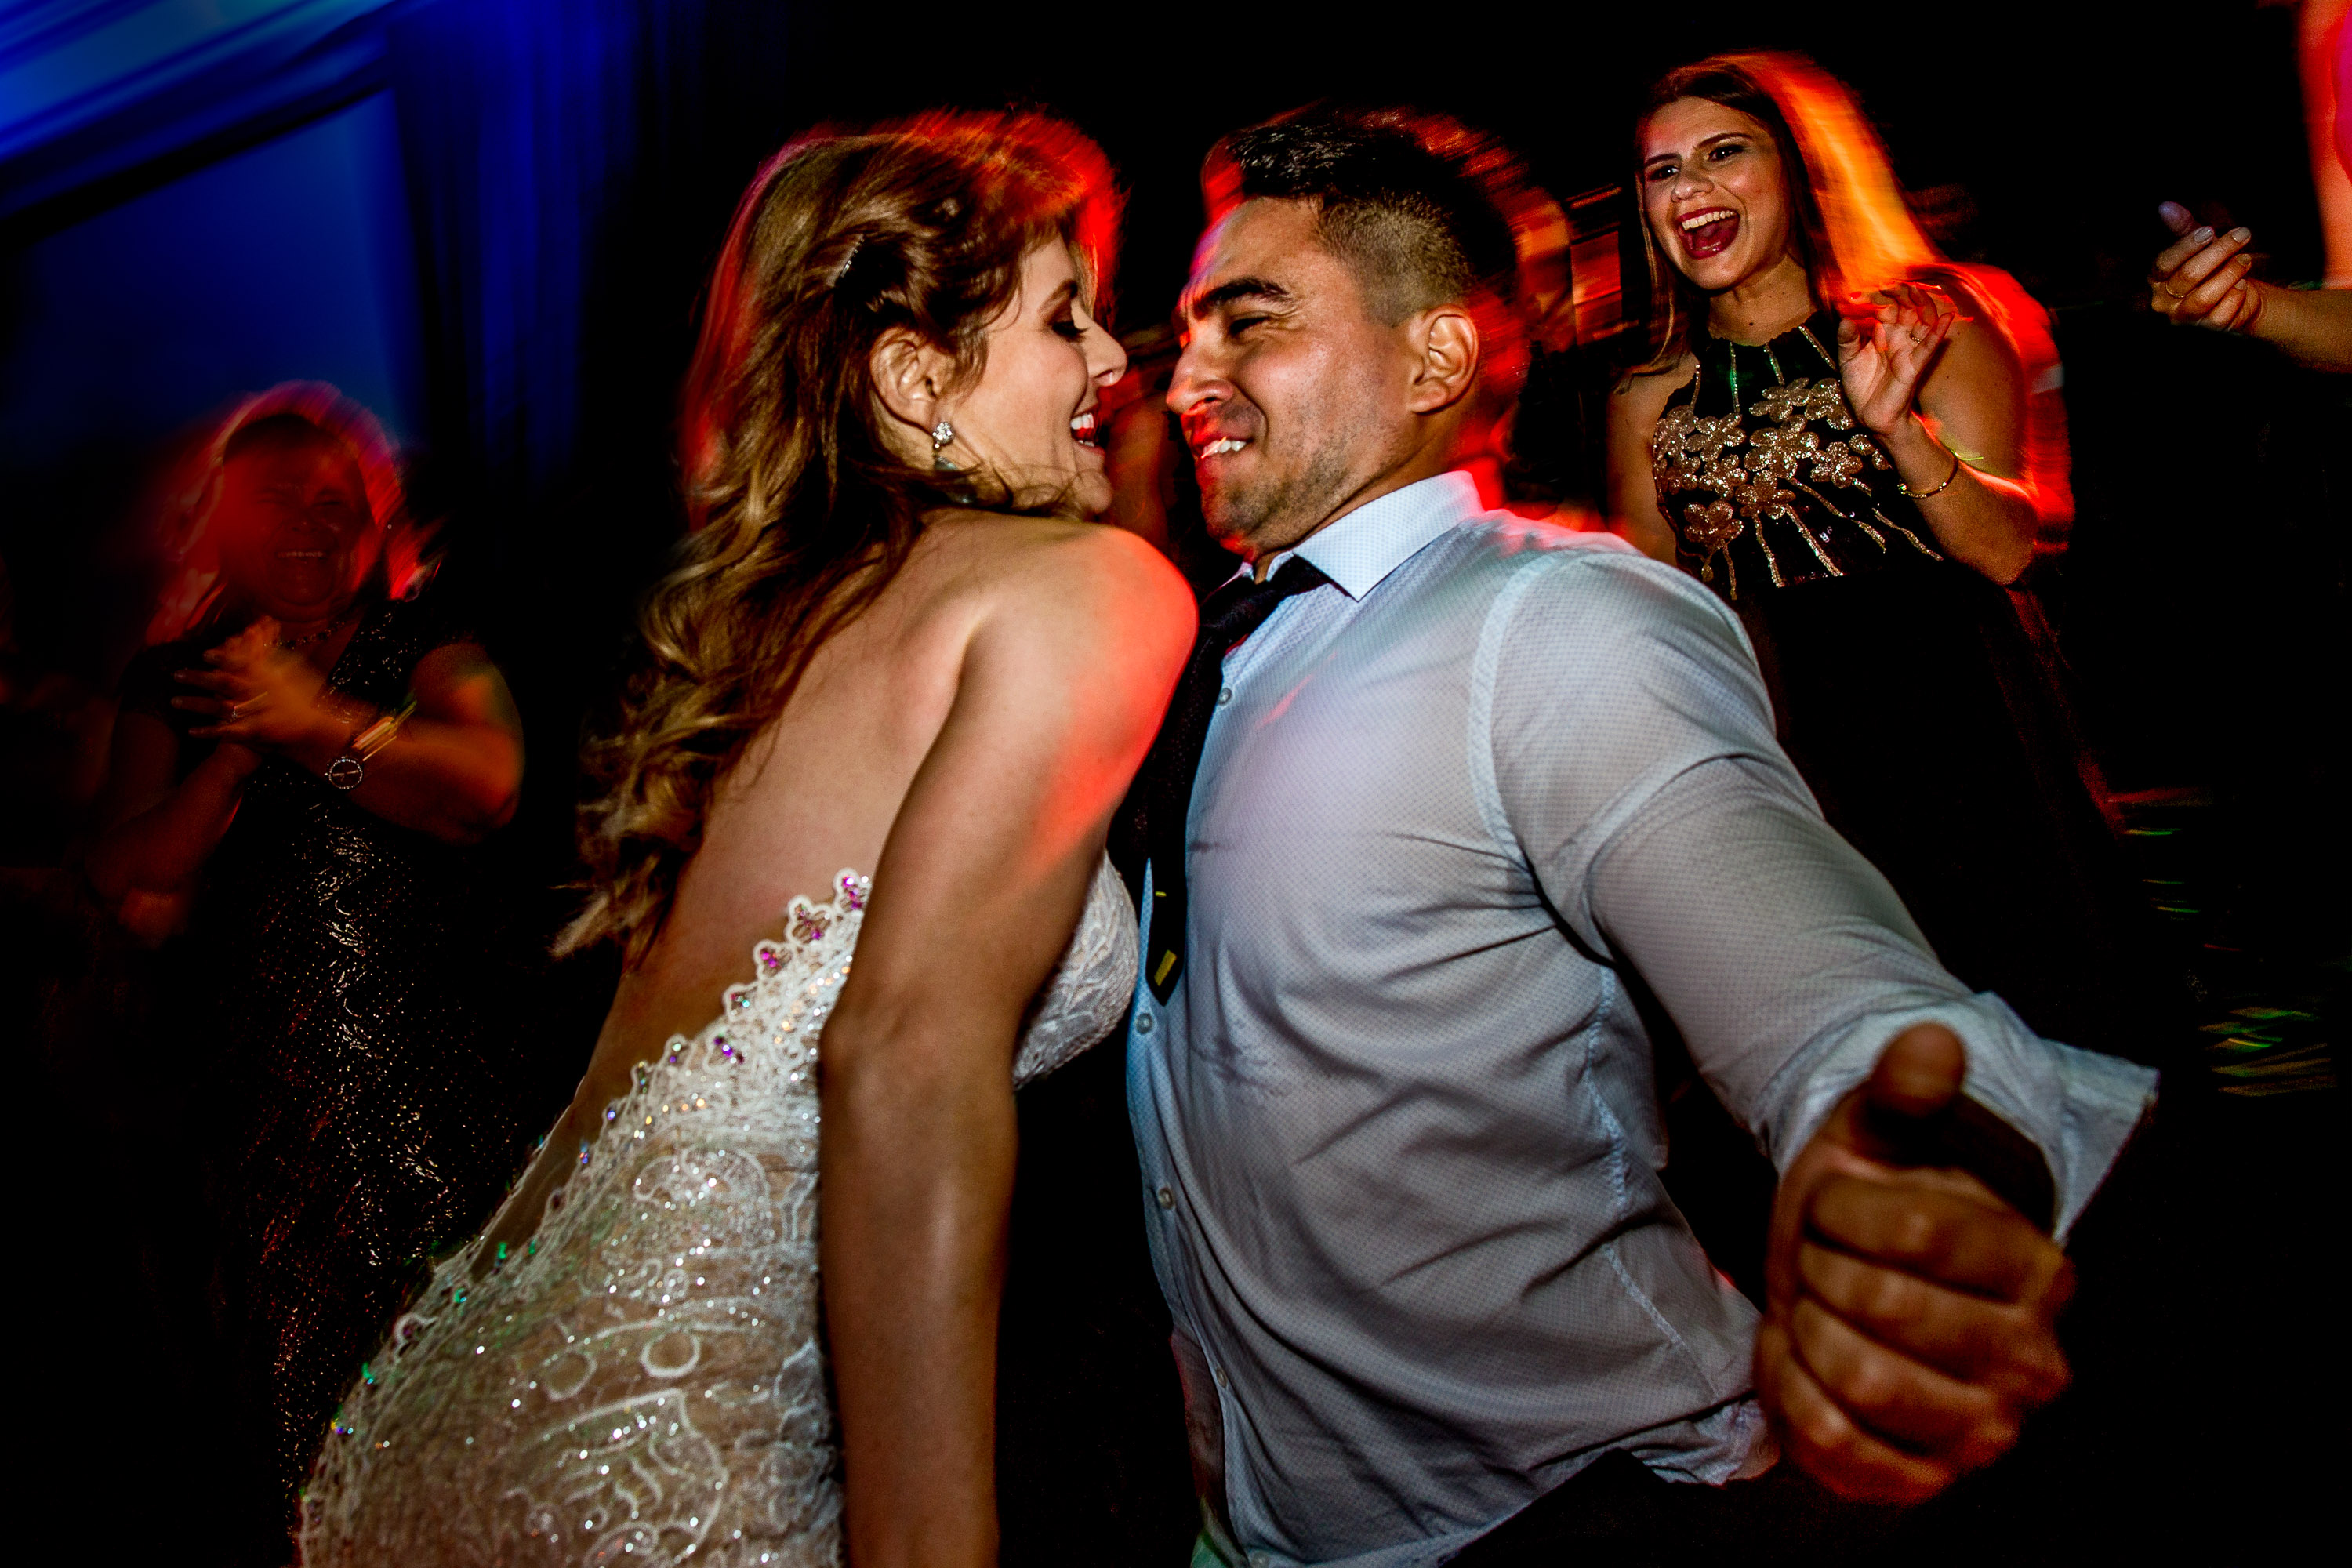 Crazy reception dancing photo with bride in Lima Peru